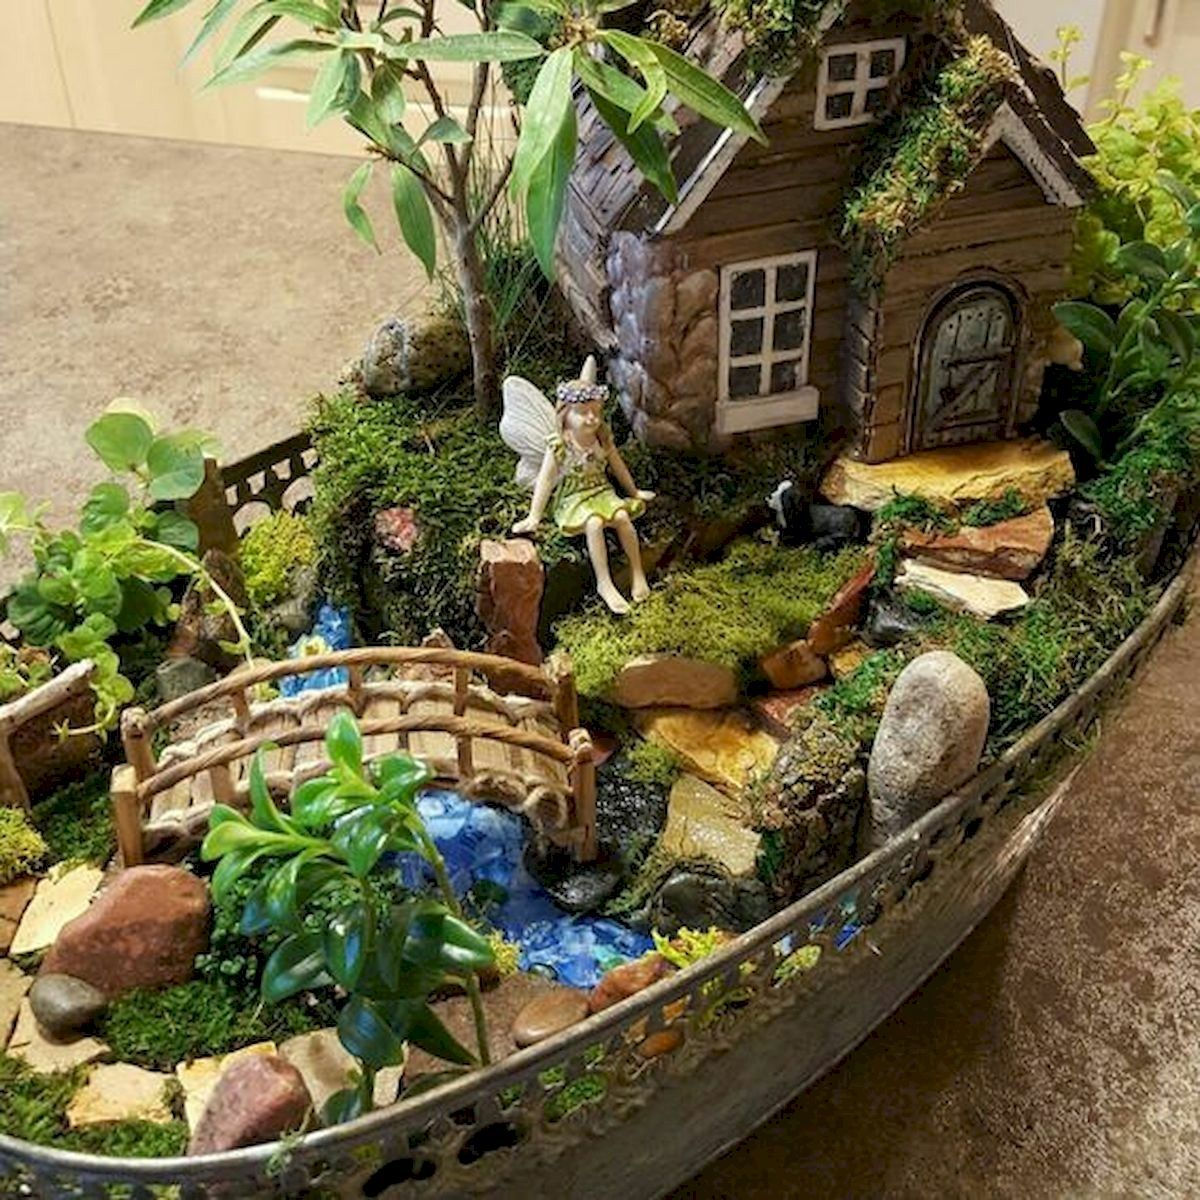 A Fairy Garden Is Basically A Miniature Garden Made Of Natural Materials Such As Pebbles Wood And Li Indoor Fairy Gardens Fairy Garden Houses Miniature Garden